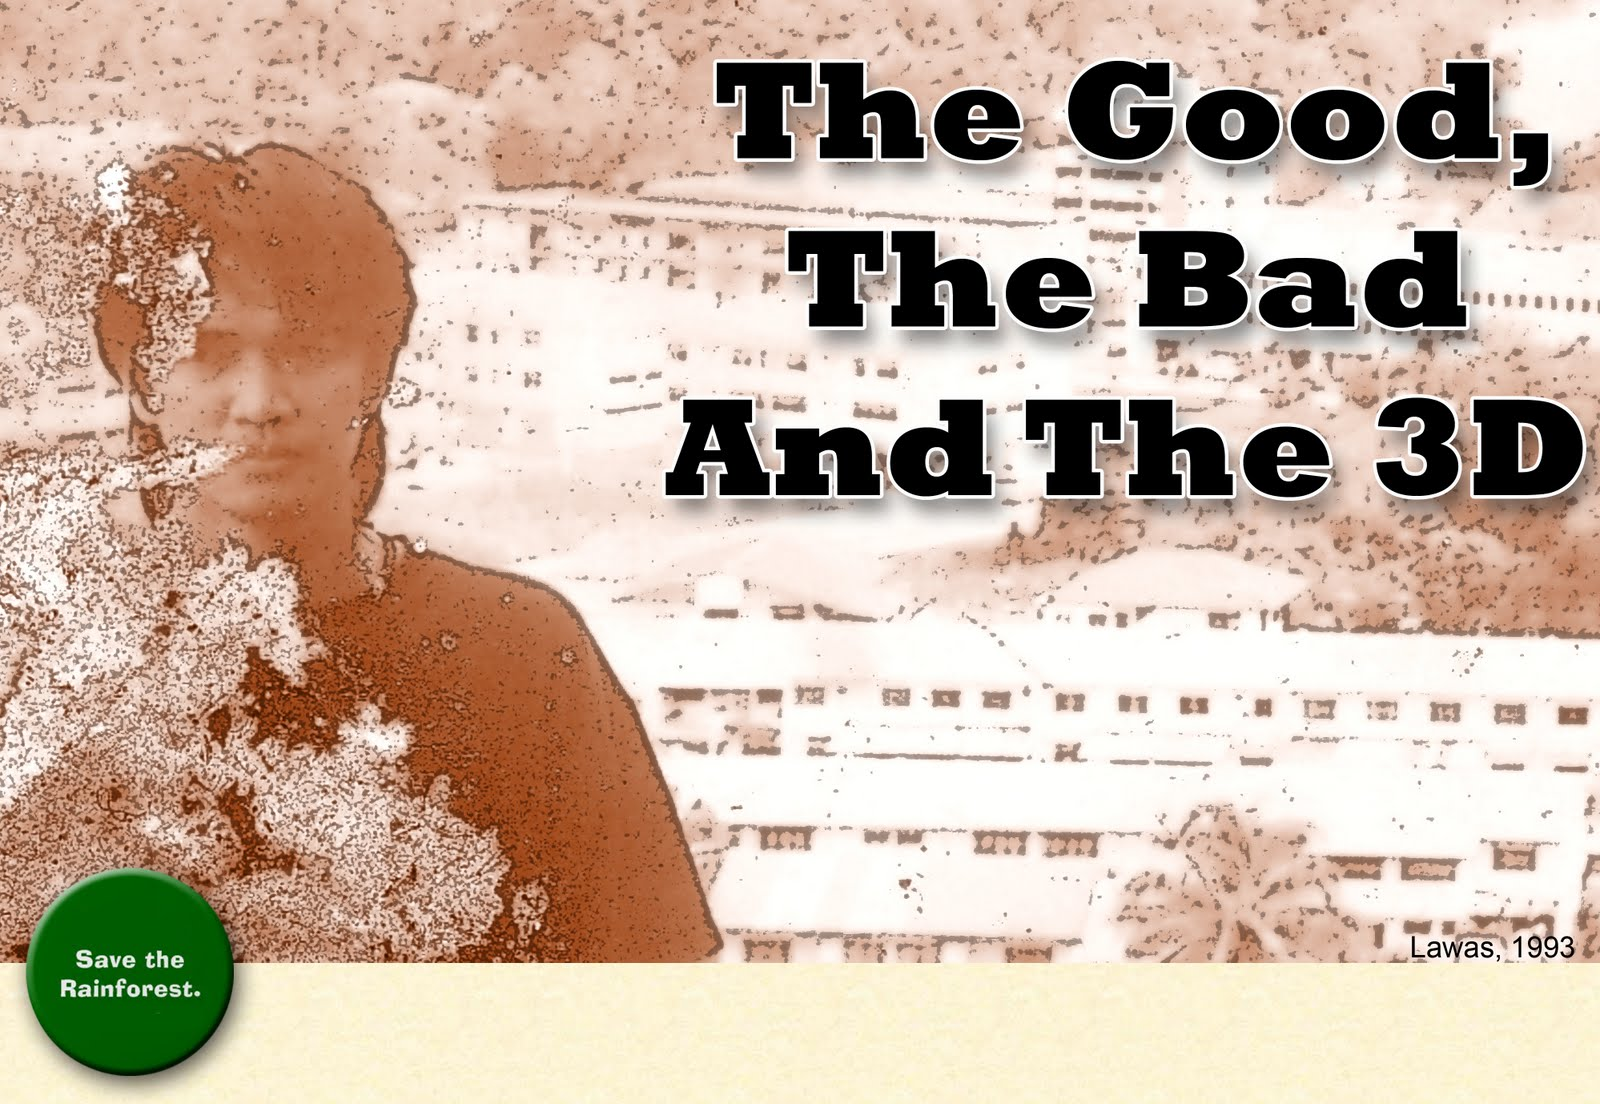 The Good The Bad And The 3D